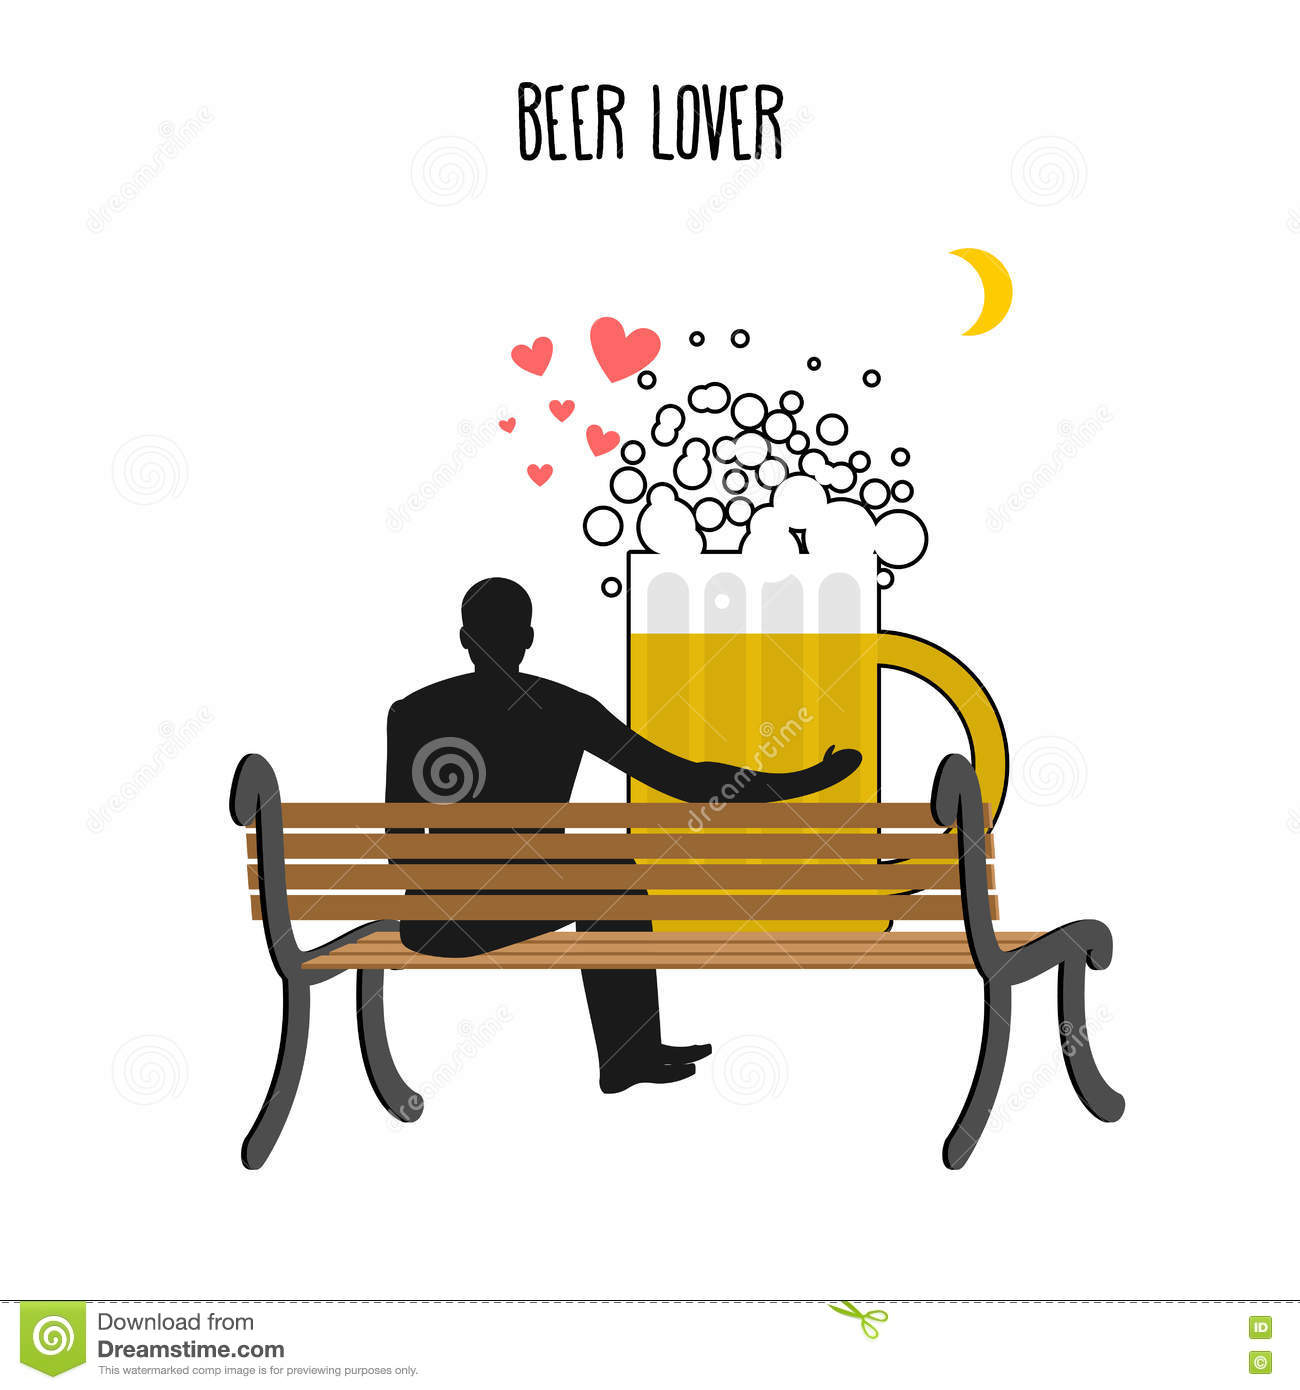 beer lovers dating site This refreshing beer live wallpaper application is perfect for all beer lovers take a glass or a bottle of the best beverage in the world and simply enjoy life.